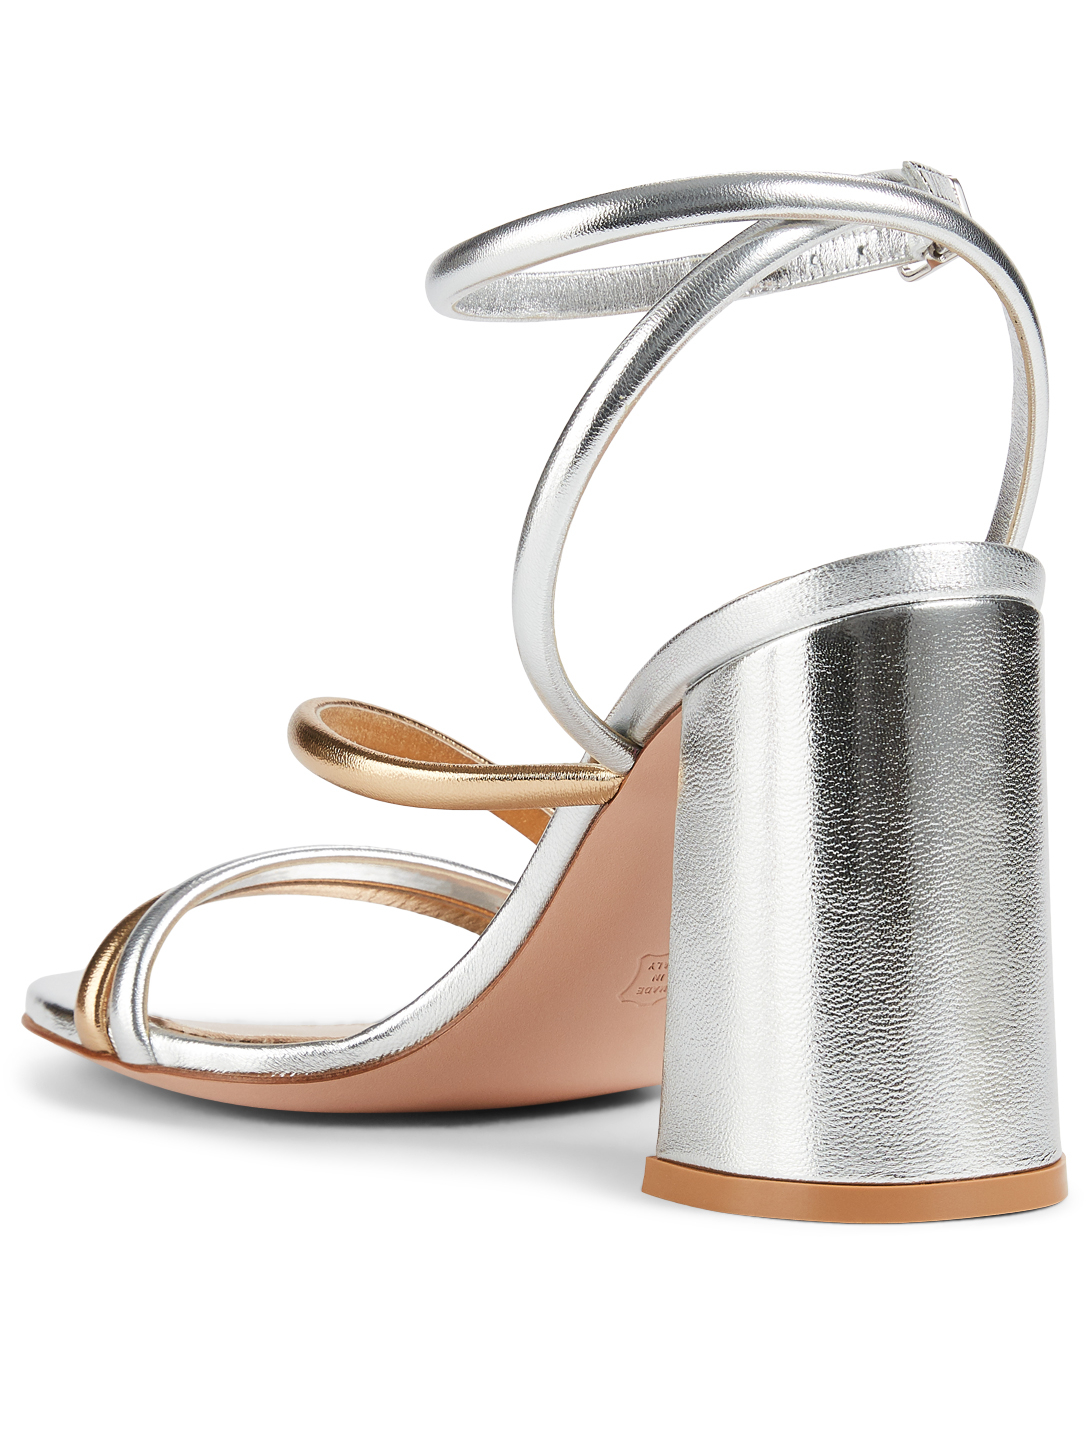 GIANVITO ROSSI Bekah 85 Metallic Leather Heeled Sandals Women's Metallic